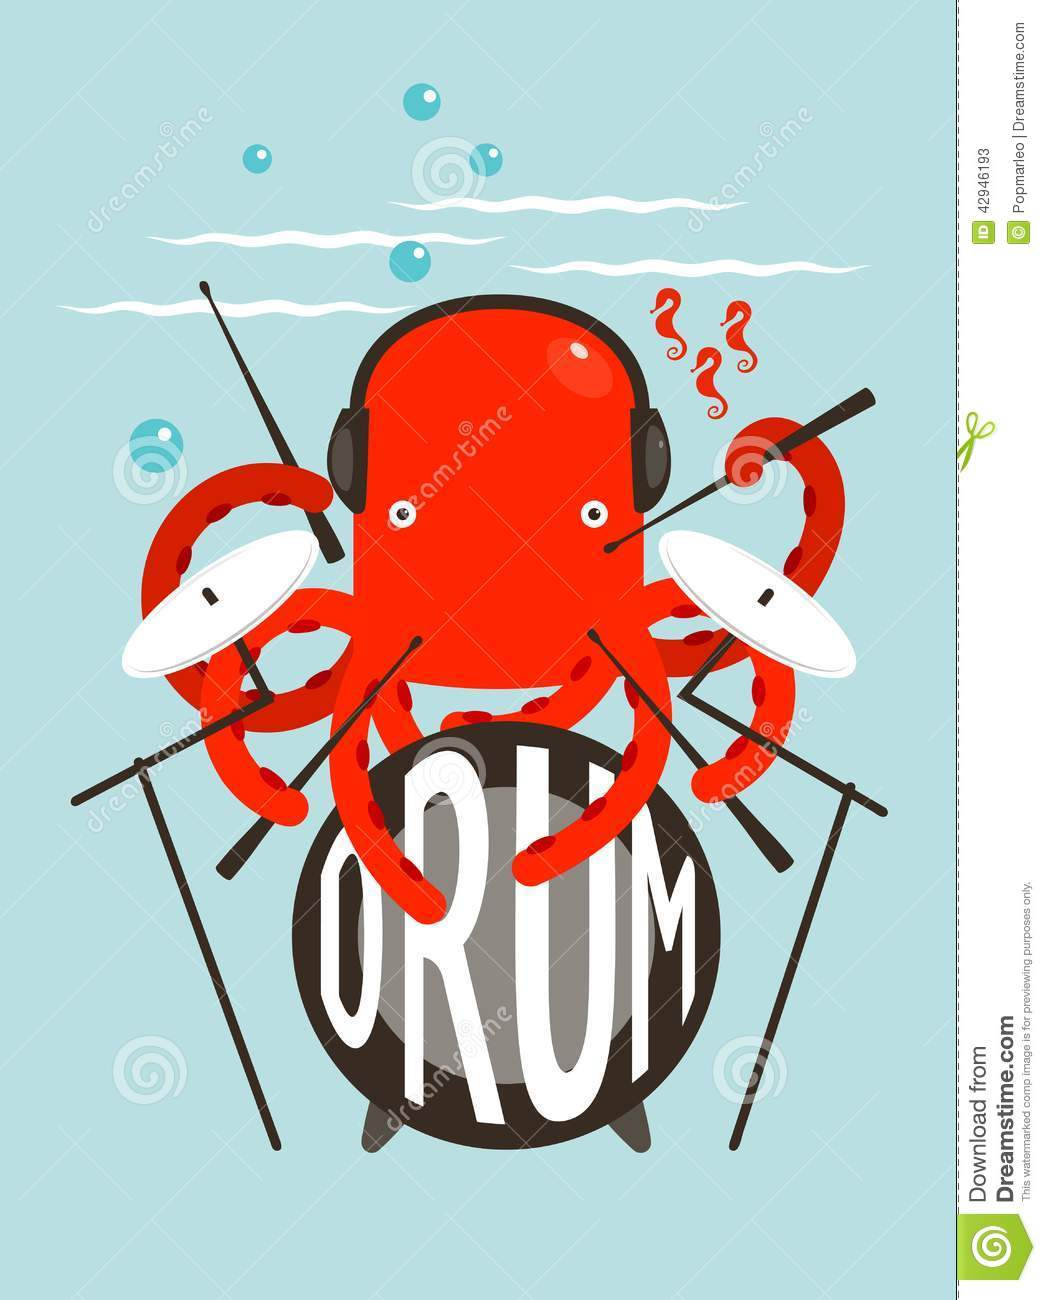 red octopus playing drums stock vector illustration of fish 42946193. Black Bedroom Furniture Sets. Home Design Ideas